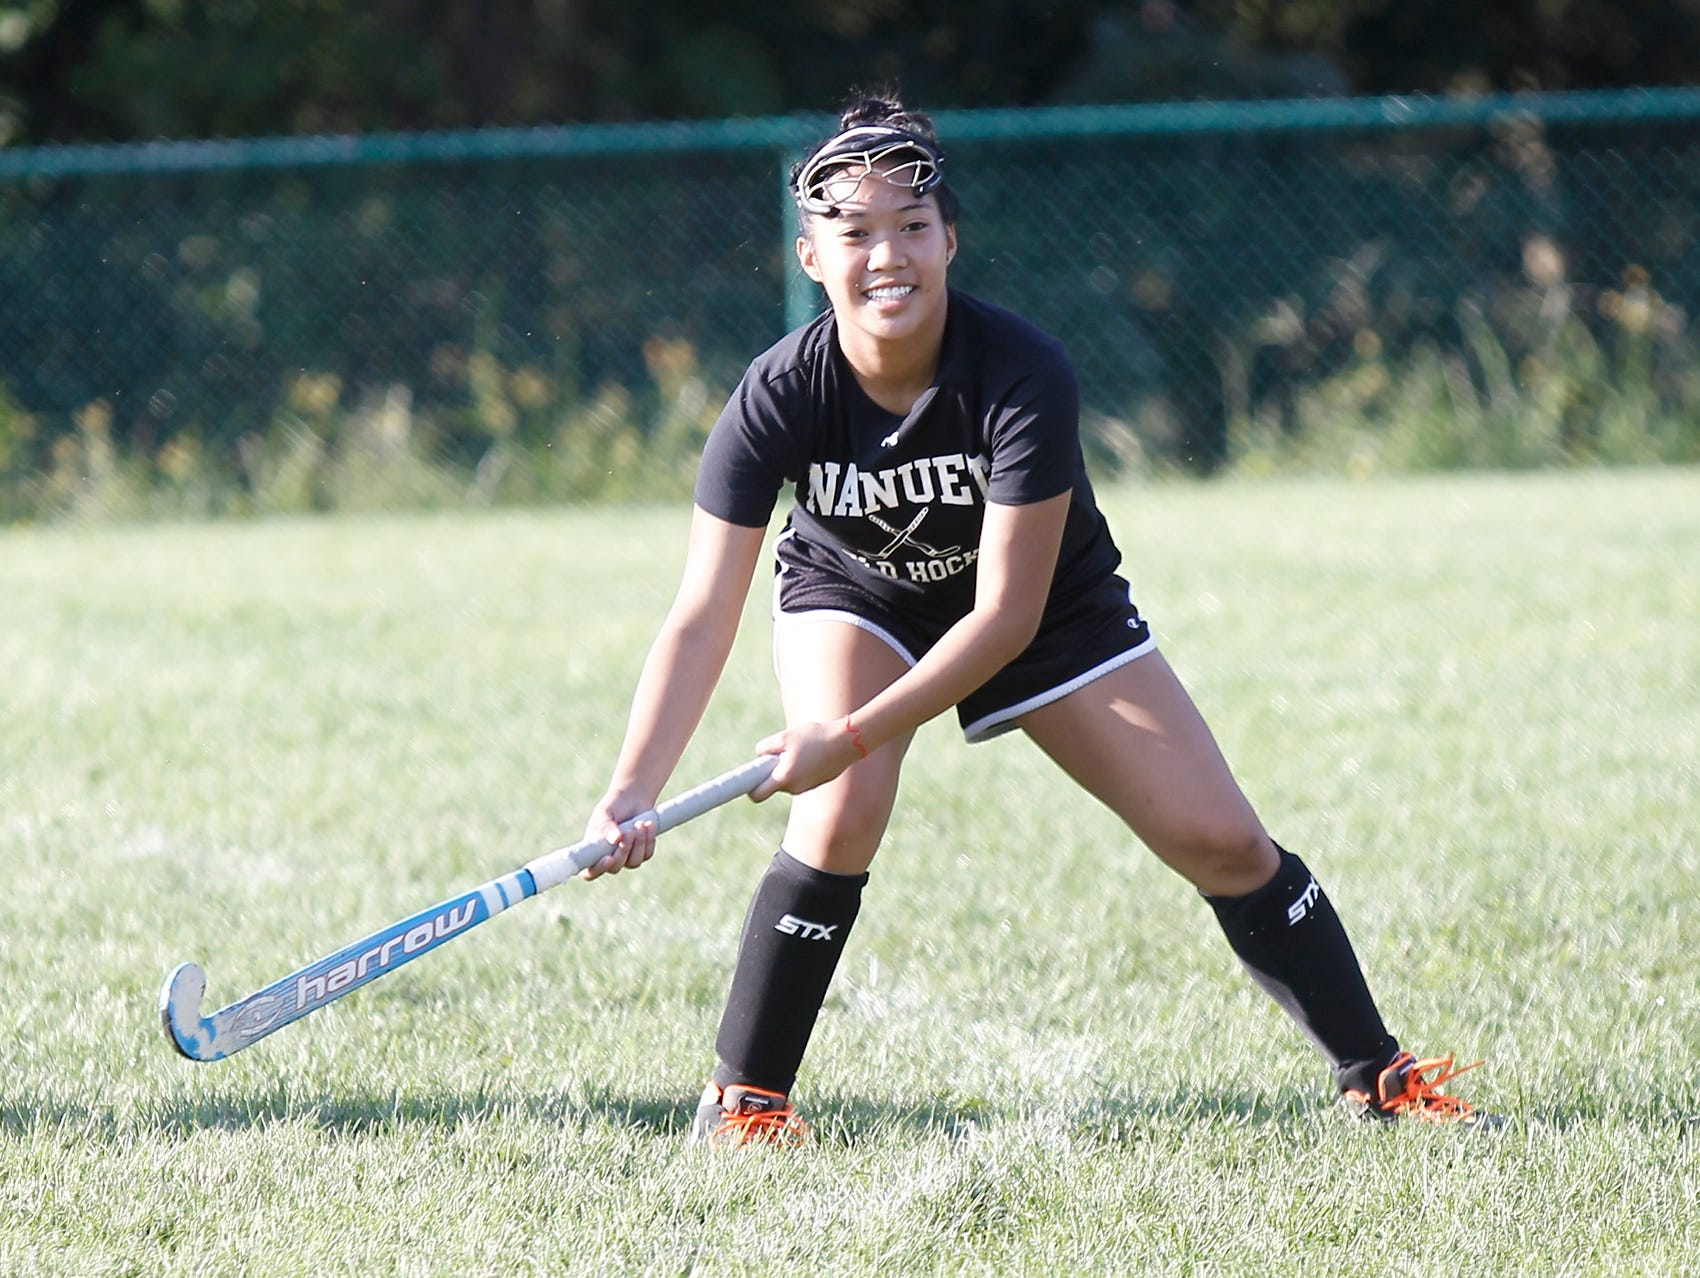 Nanuet's Vianne Palad works out during field hockey practice at Nanuet High School in Nanuet on Thursday.